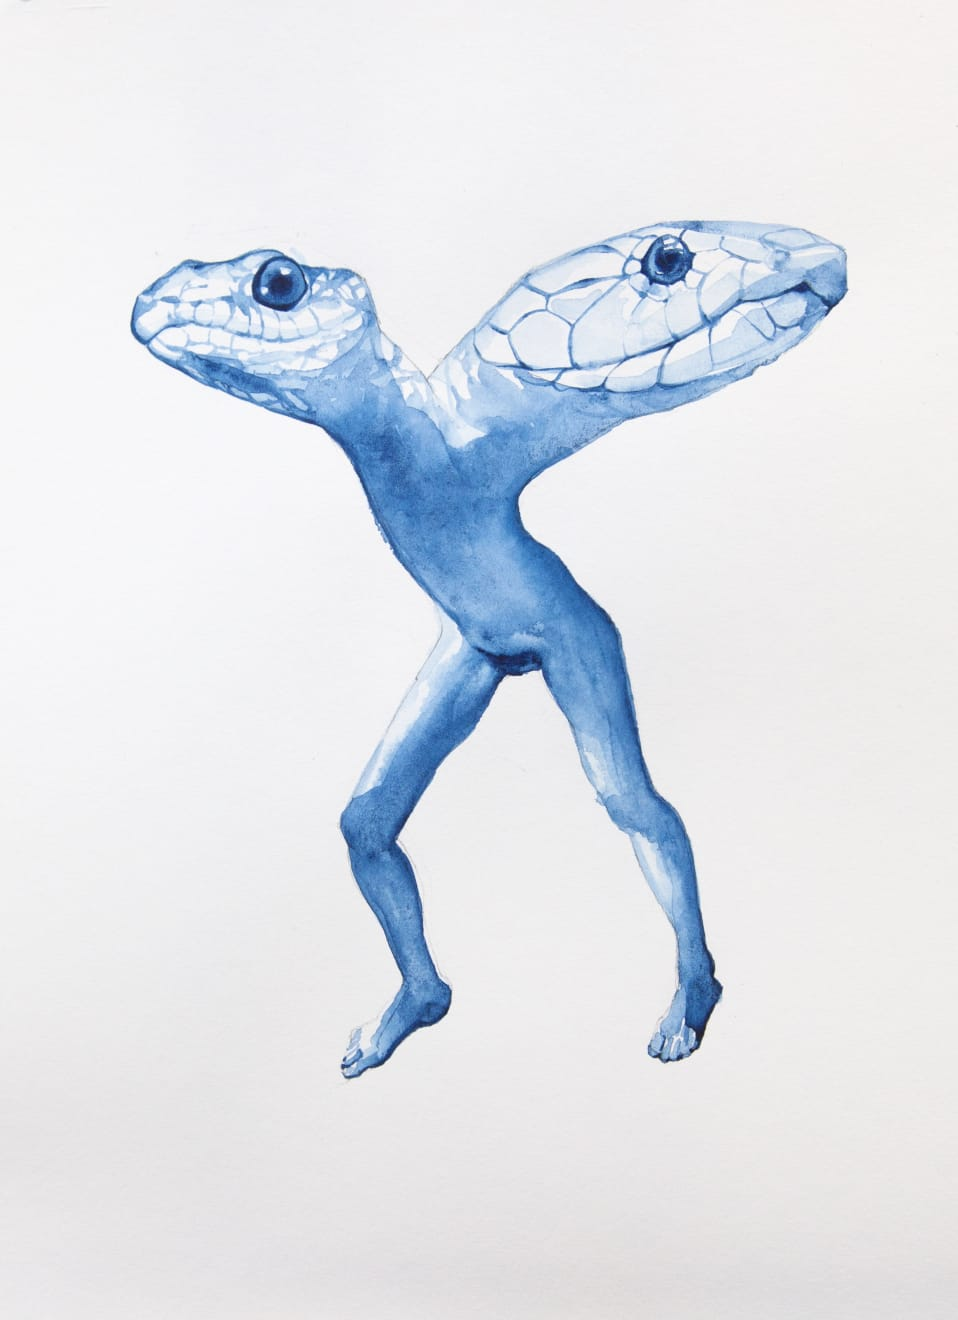 Kirsty Whiten, Double-Headed Snake, 2019, Watercolour, 35 x 25 cm